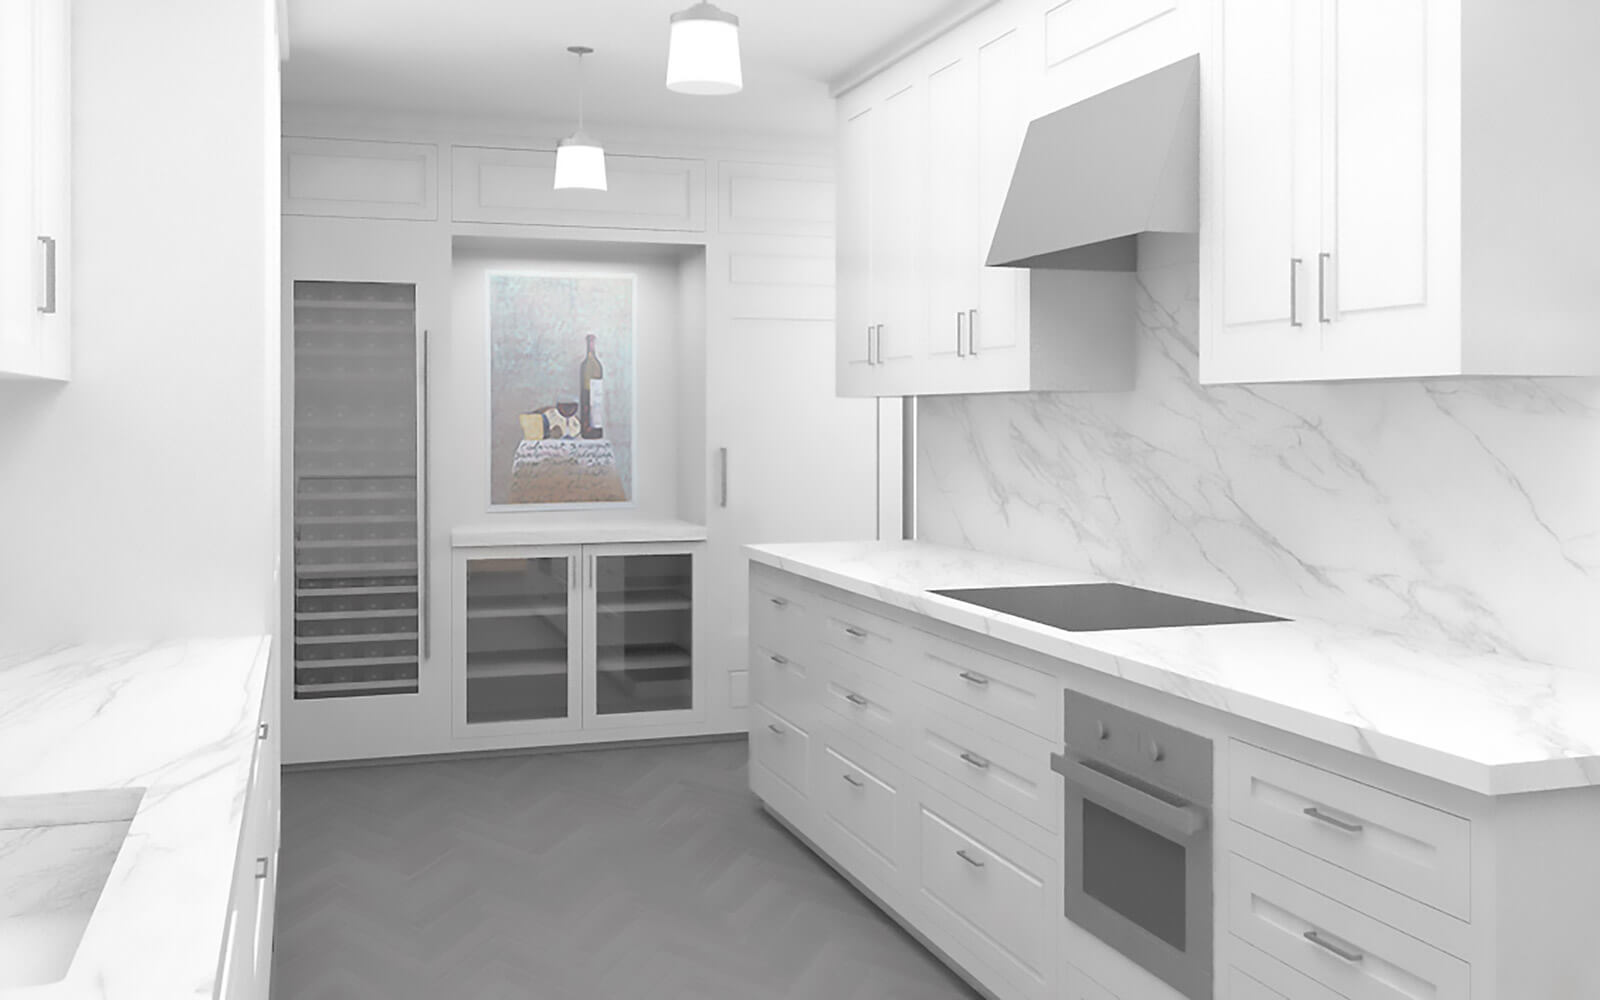 studio vara residential broadway co-op marble rendering